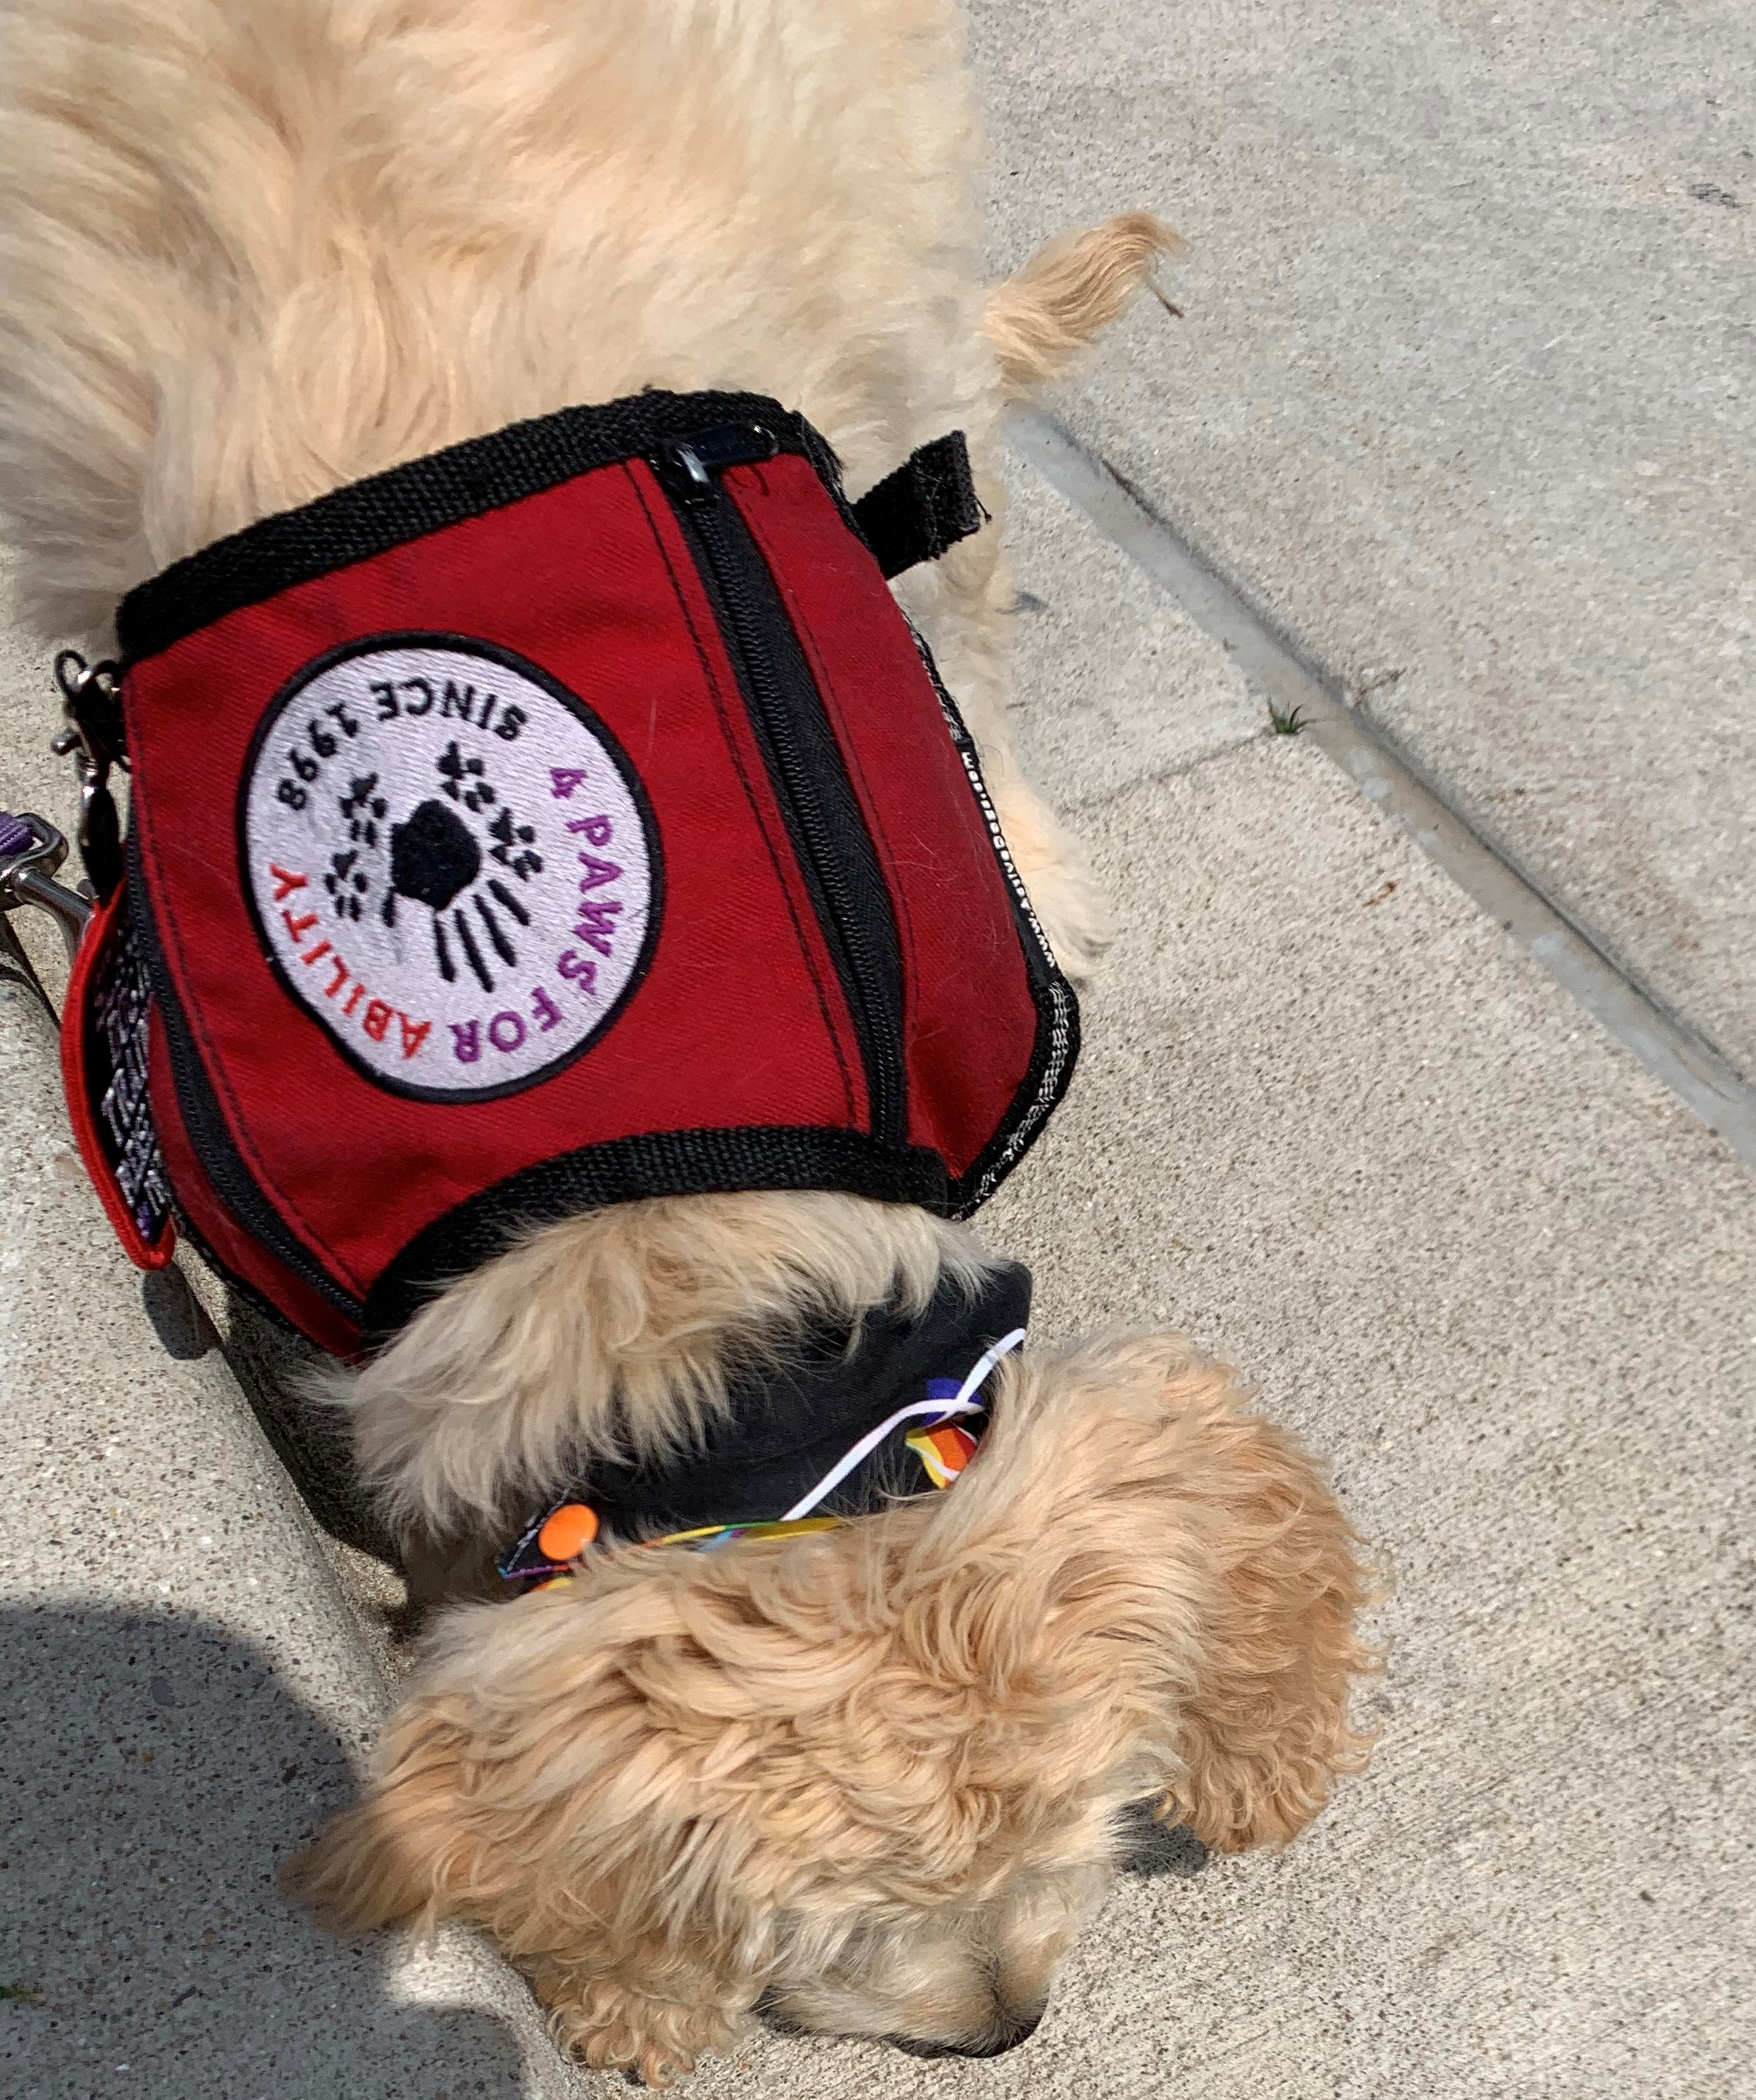 A golden doodle with a service dog vest showing 4 Paw for Ability logo